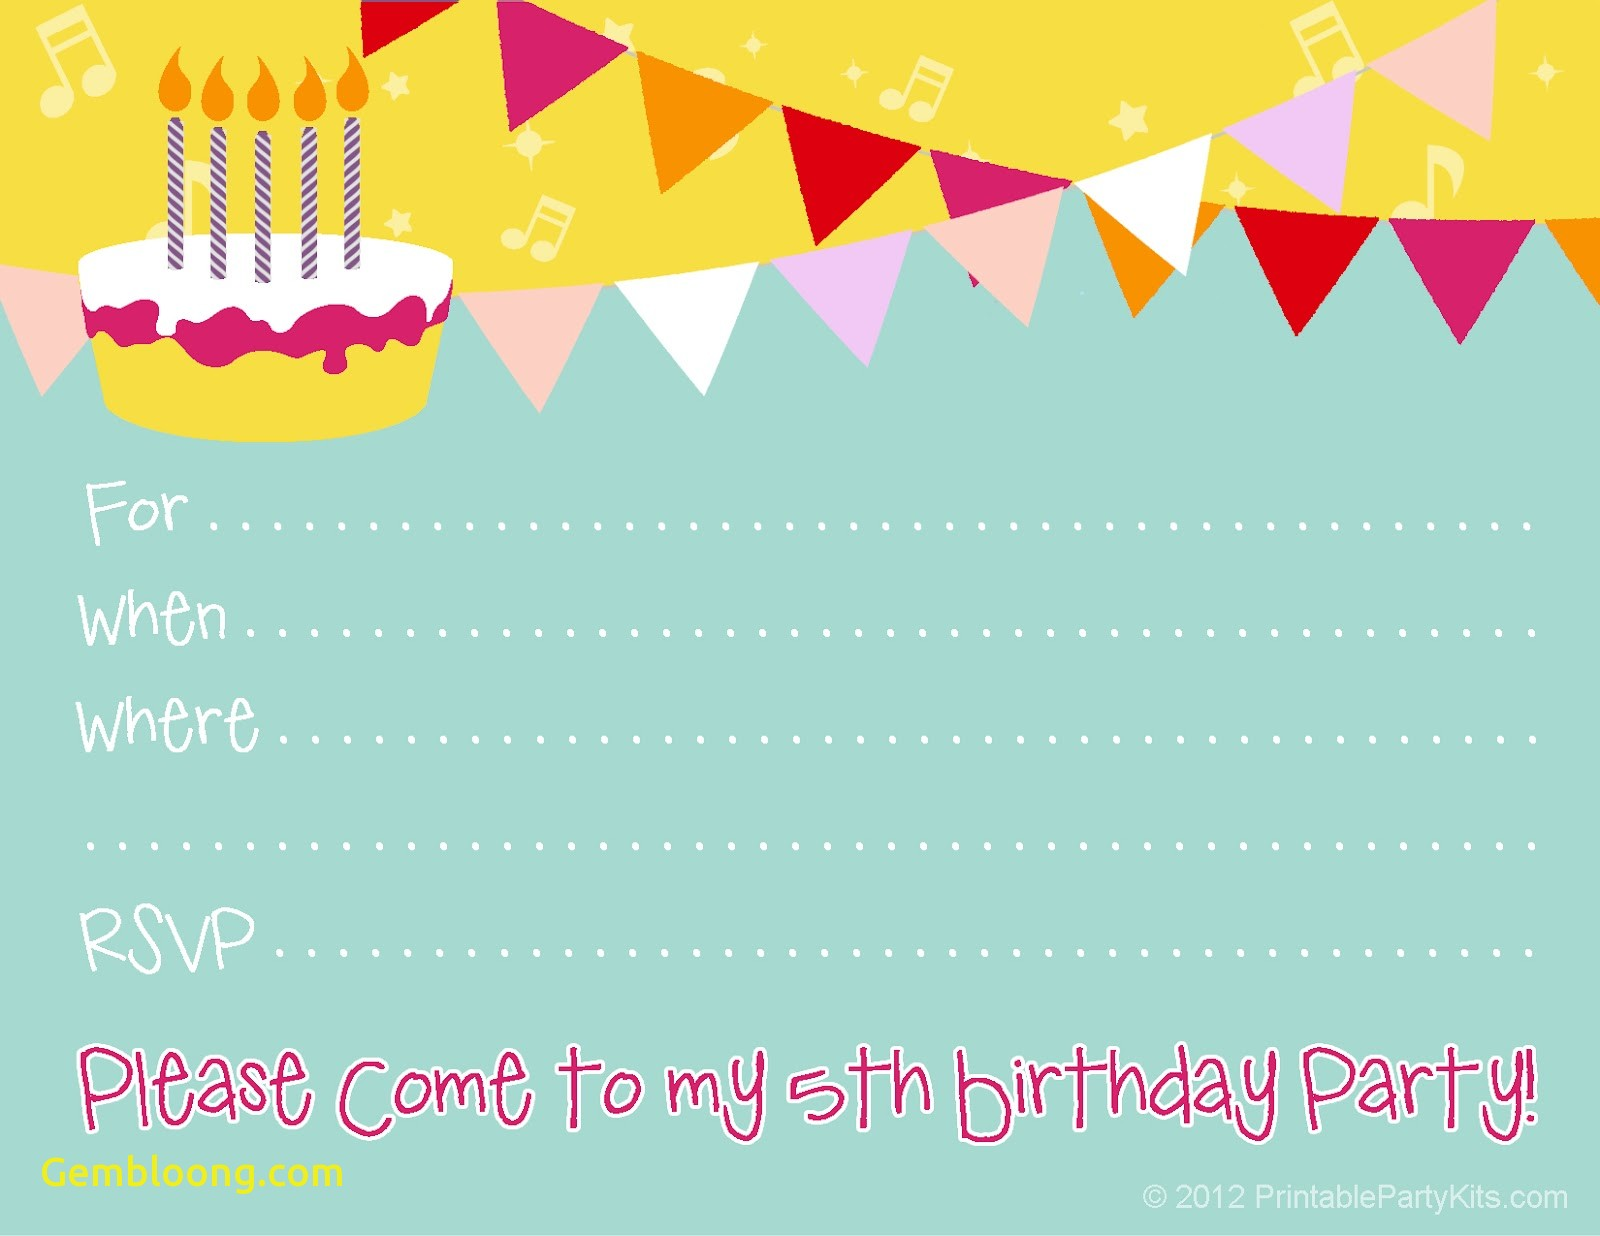 girl birthday party invitation template ; birthday-party-invitations-templates-lovely-birthday-invitation-designs-free-commonpence-co-of-birthday-party-invitations-templates